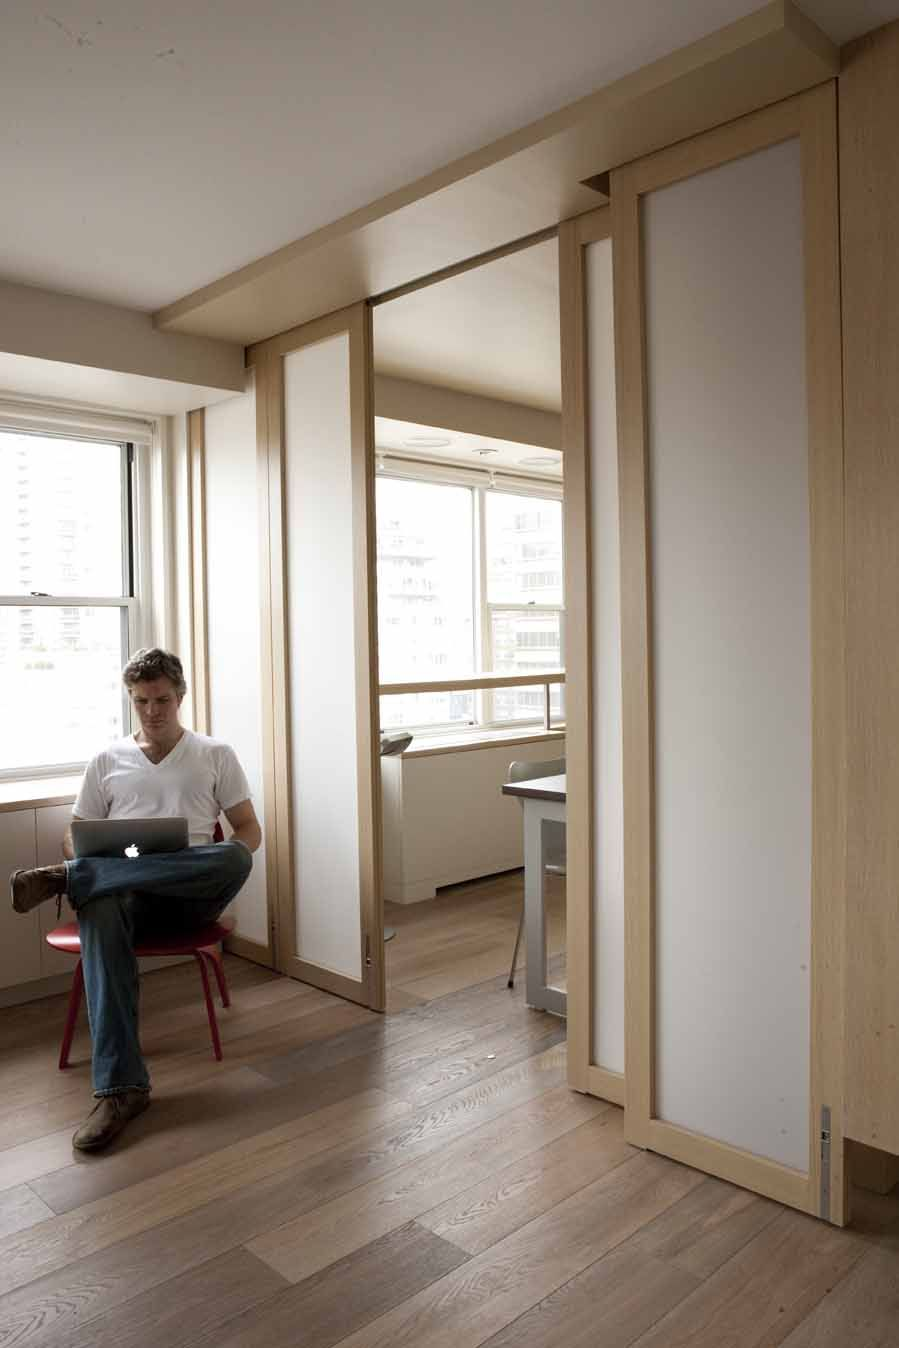 Sliding And Stacking Doors Give New Flexibility To The Home Office